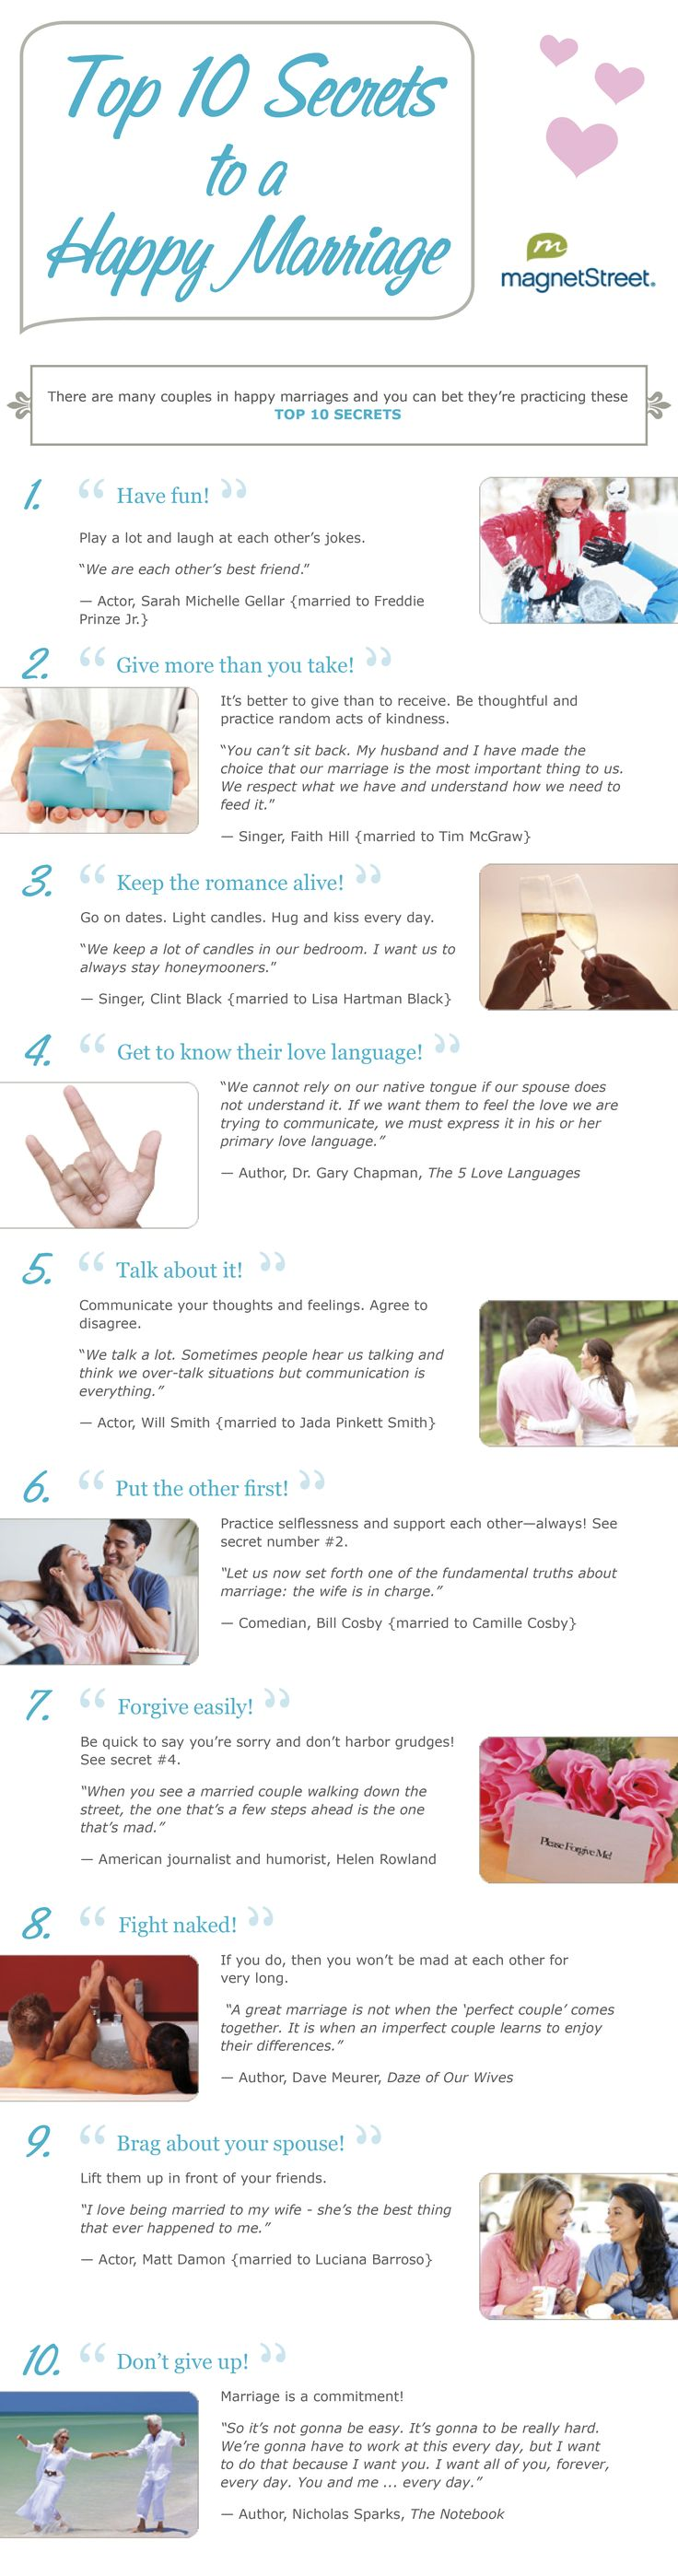 Top 10 Secrets to a Happy Marriage                                                                                                                                                                                 More